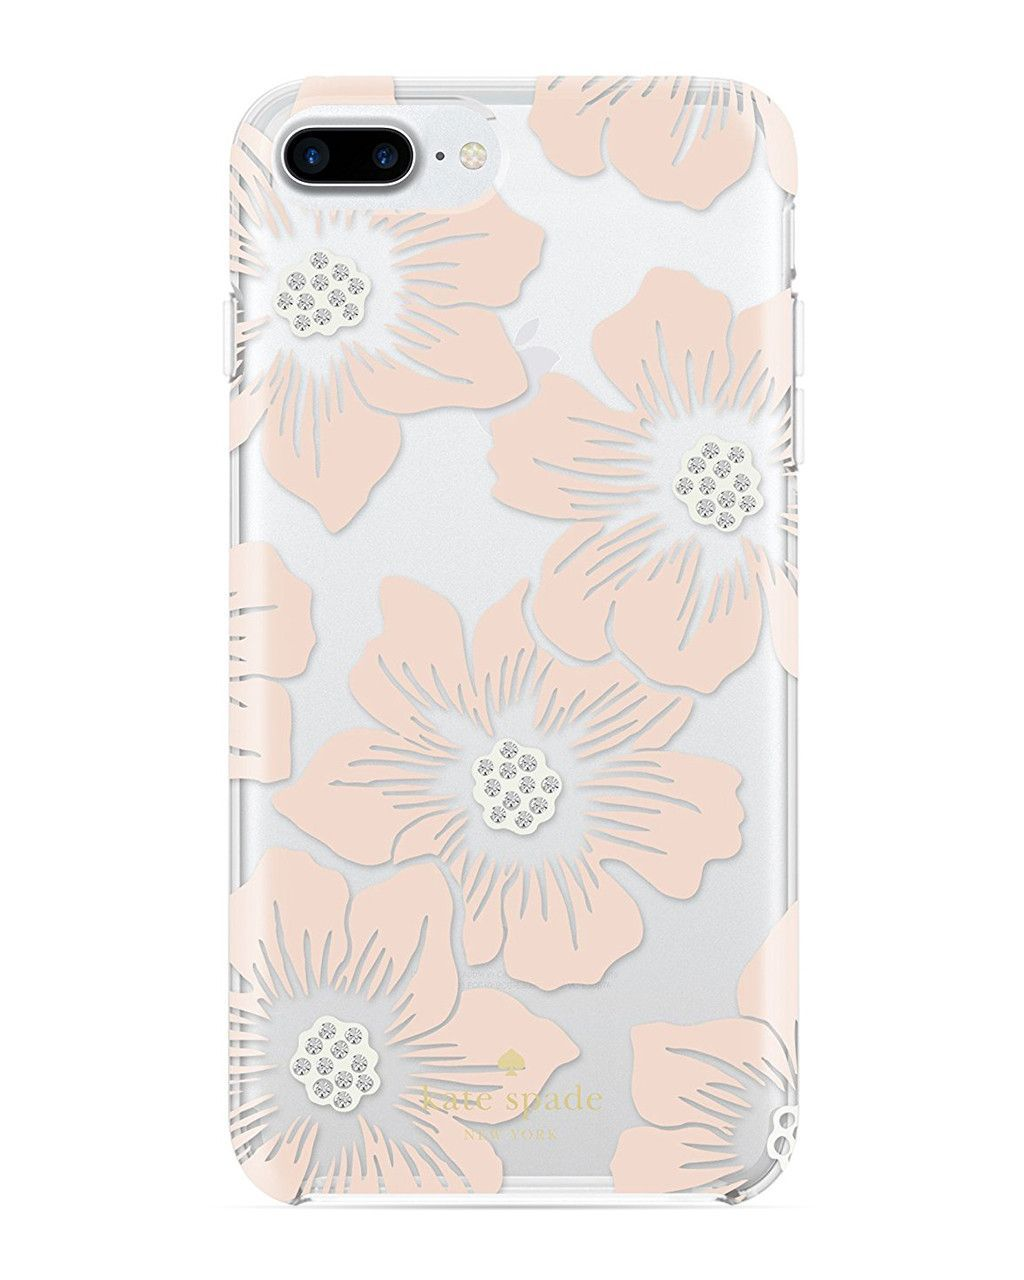 on sale a46fa d3935 Kate Spade Pink Sand/Stones/Hollyhock Floral Phone Case for iPhone 7 ...